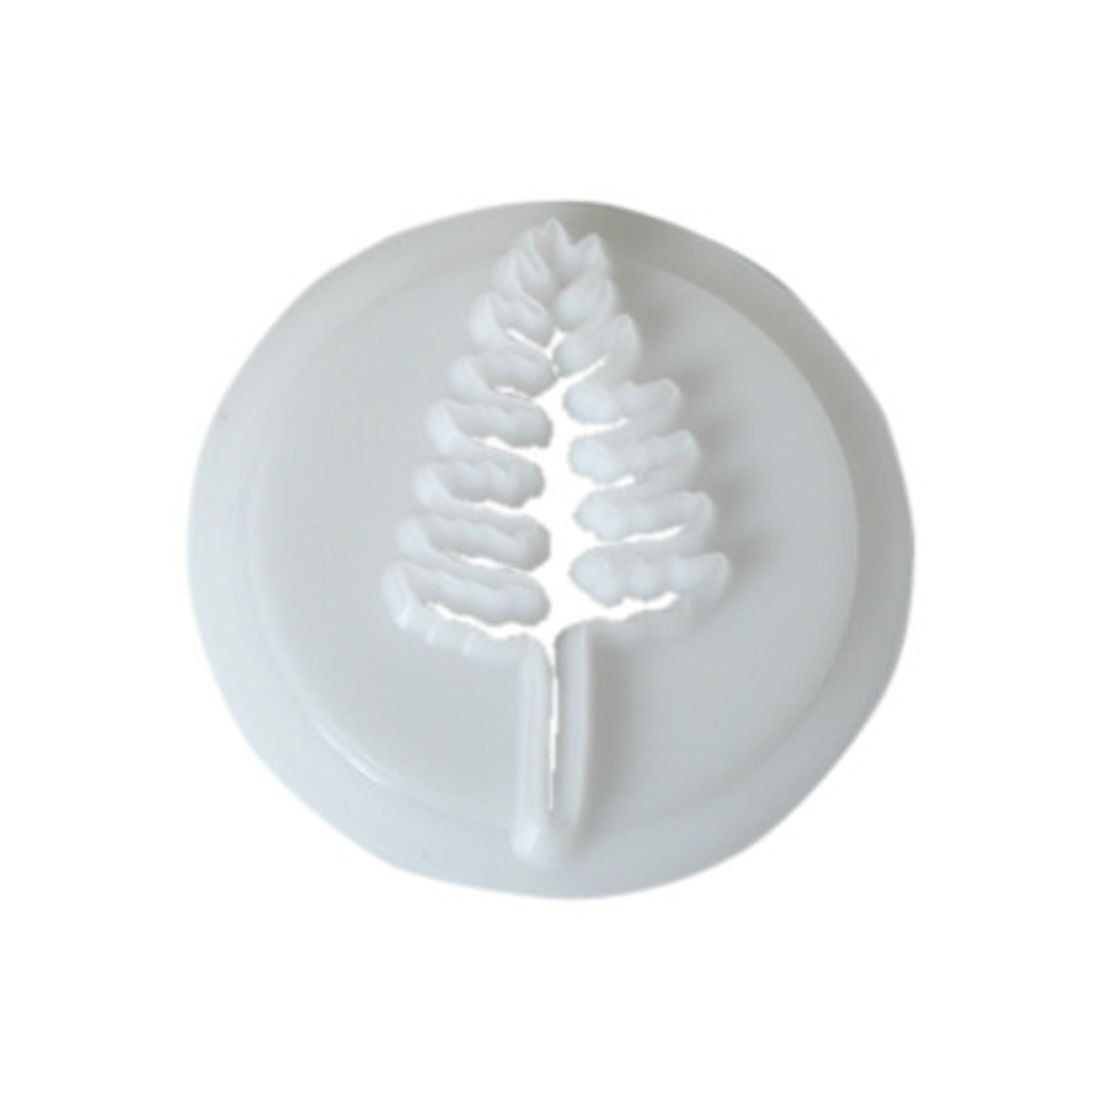 FMM Sugarcraft Leaf Cutter - Fern *** Unbelievable offers are coming! : Baking Accessories